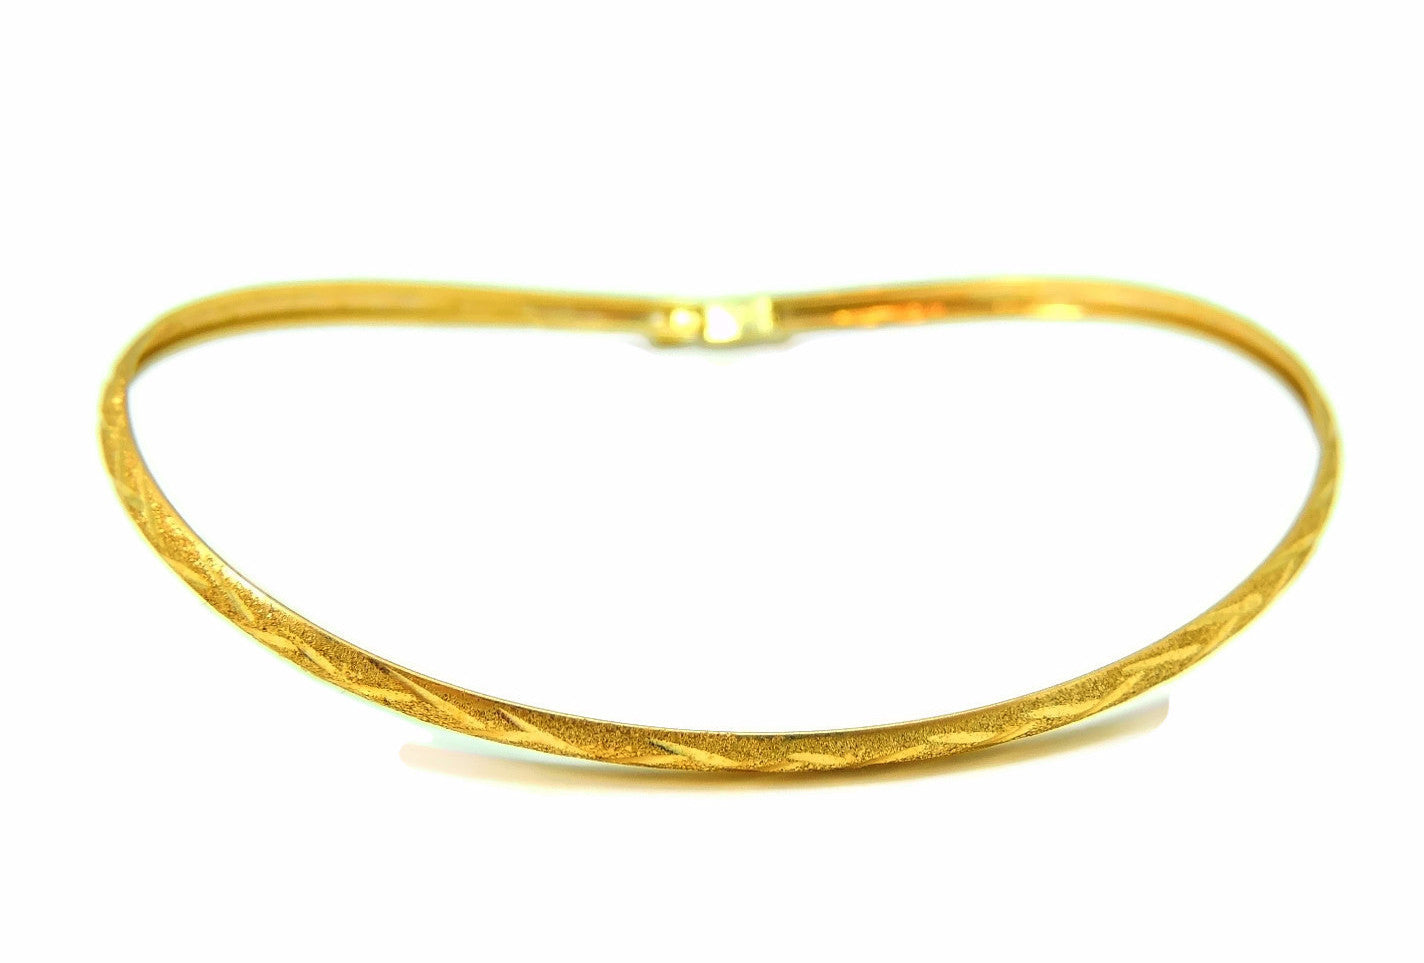 Flexible Hinged Bangle Bracelet 10k Gold Etched Design Vintage ...